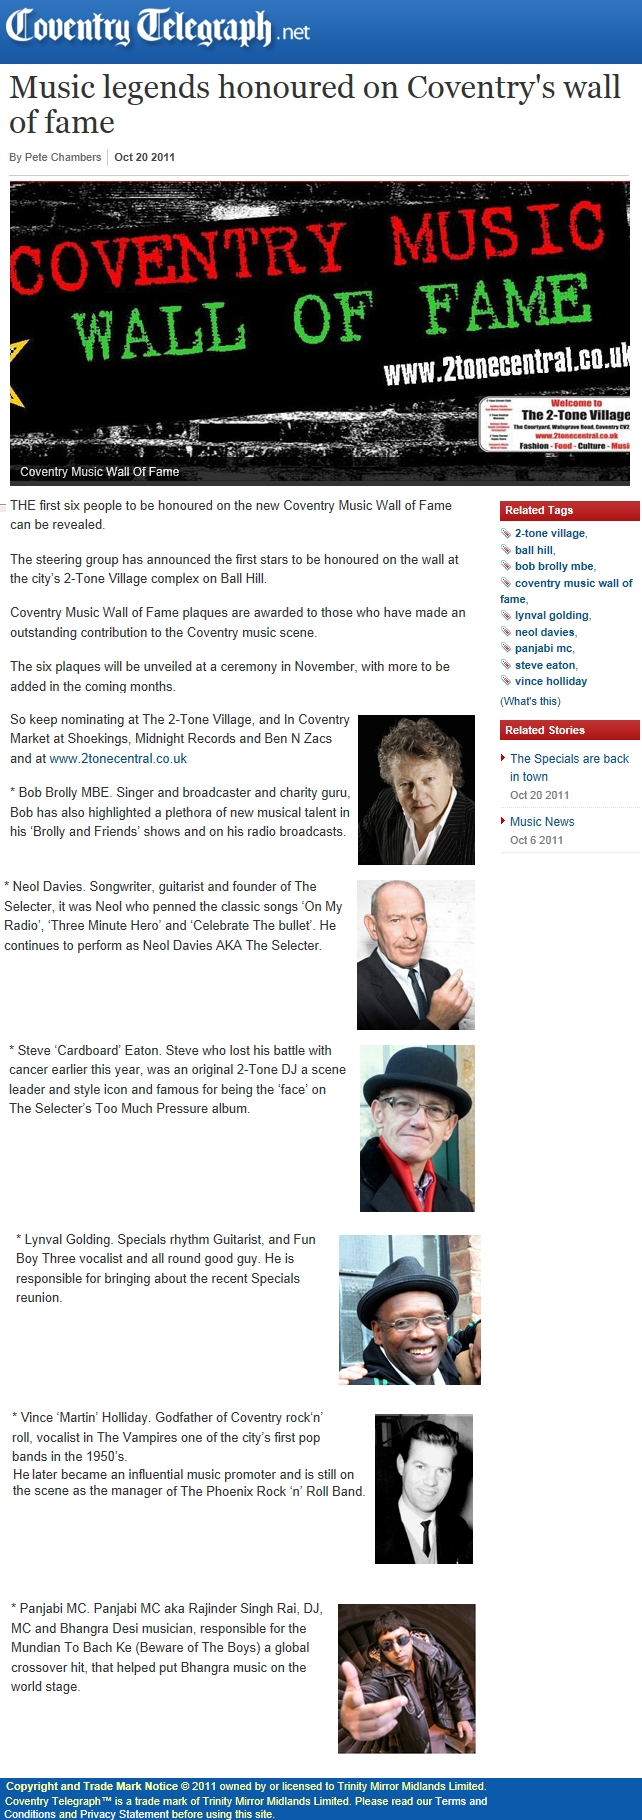 The Coventry Music Wall Of Fame - Coventry Telegraph 20 Oct 2011